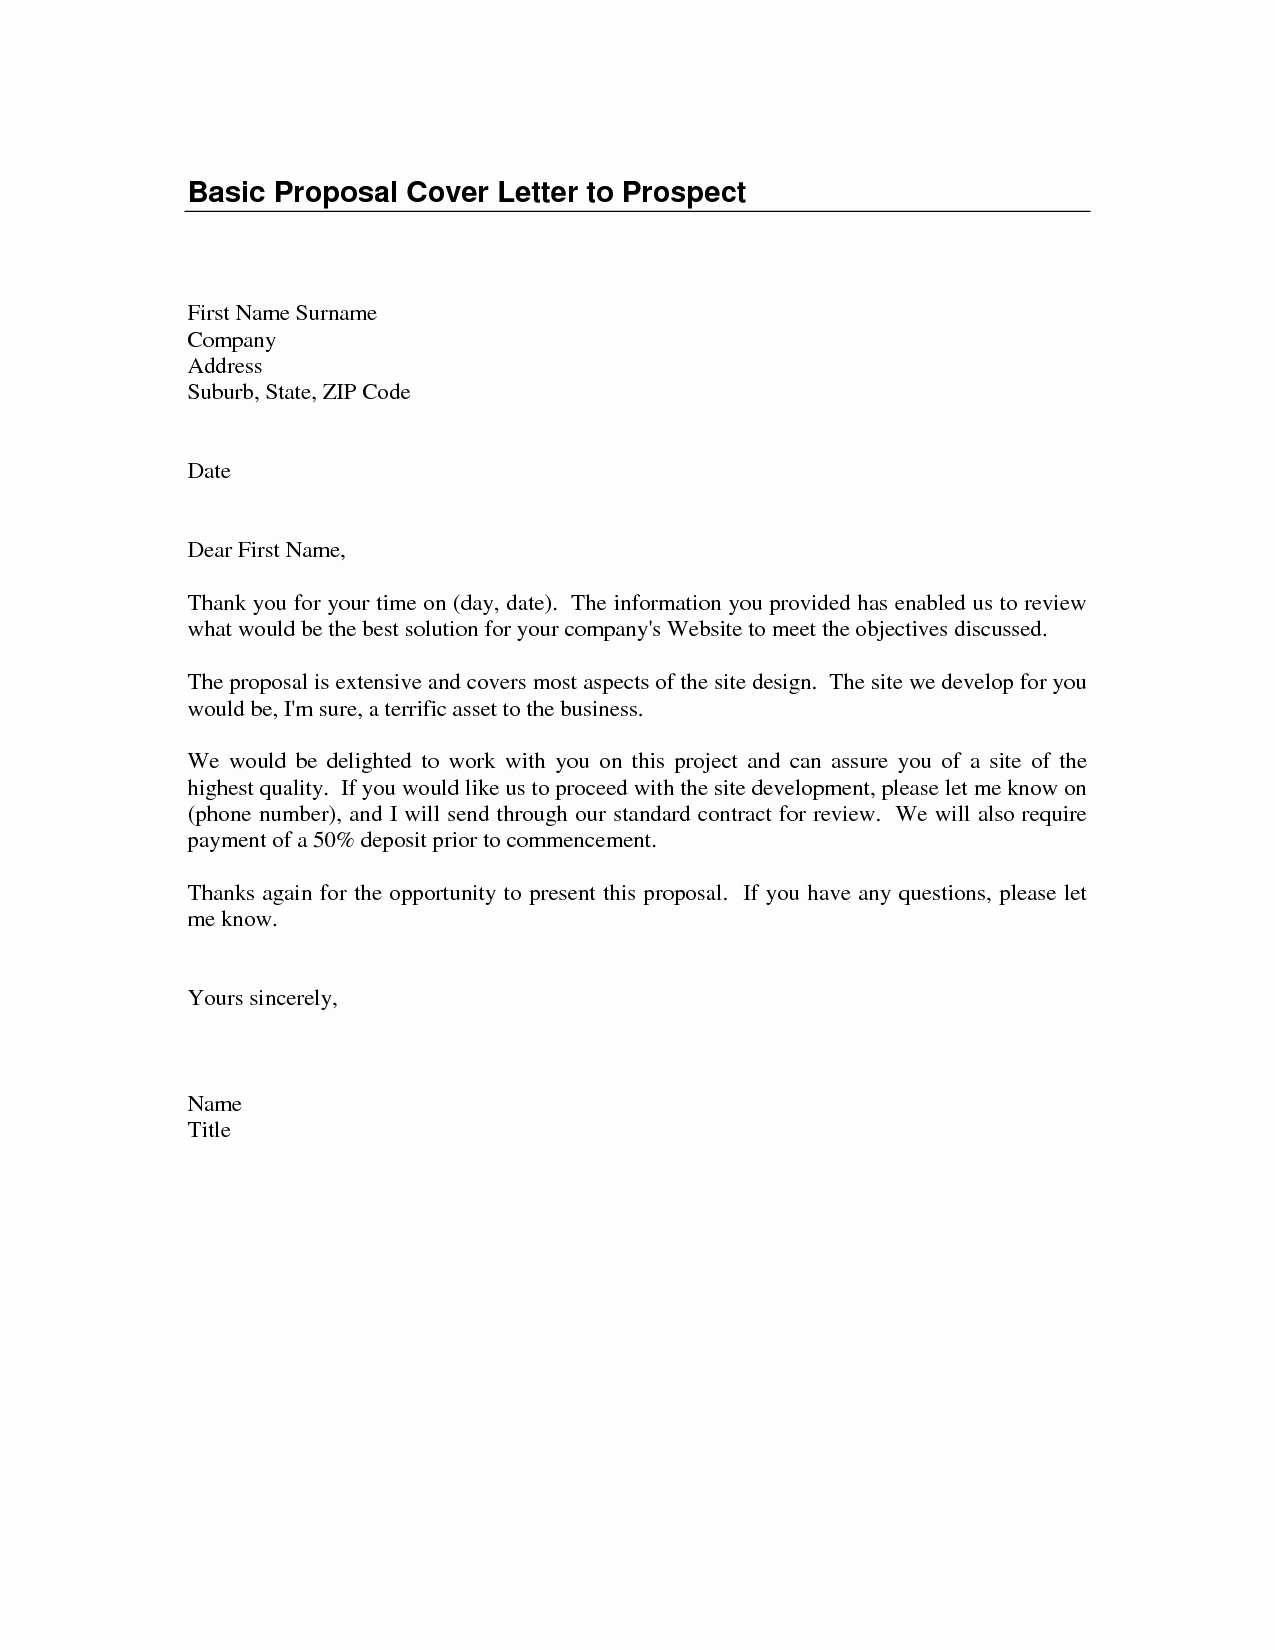 Cover Letter with Photo Template New All Cover Letter Samples for Professionals